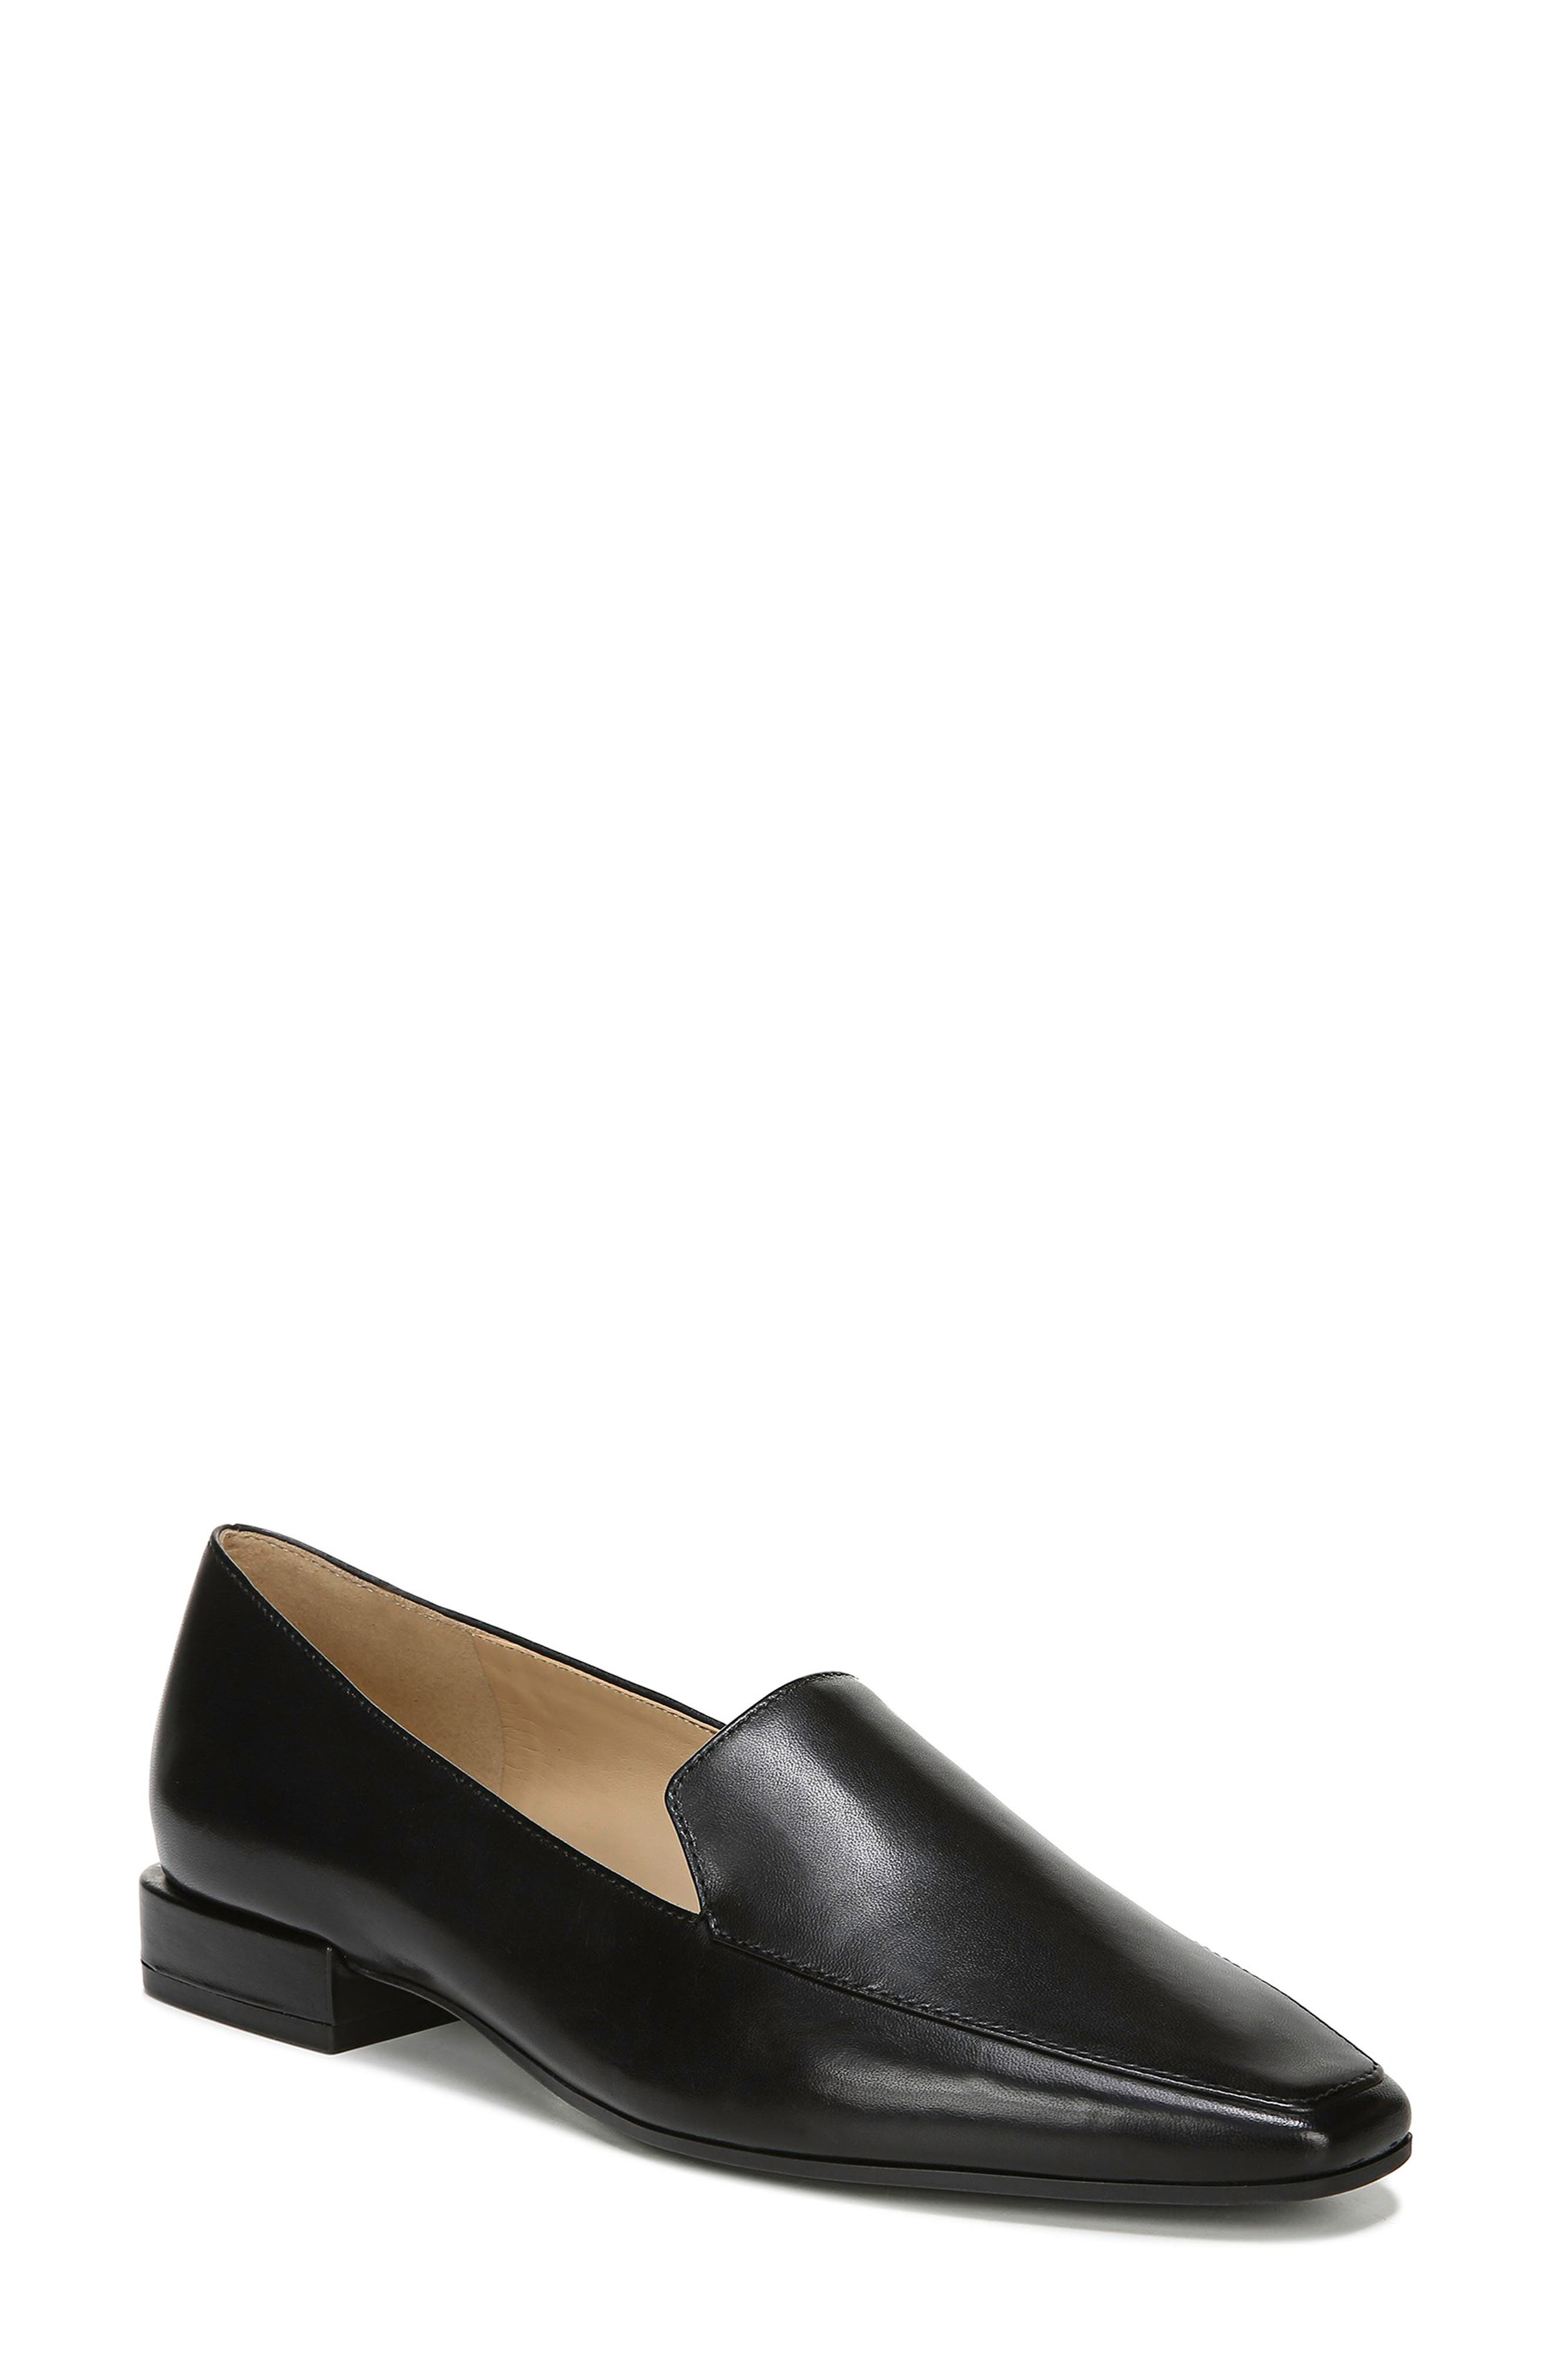 Naturalizer Clea Loafer, Black